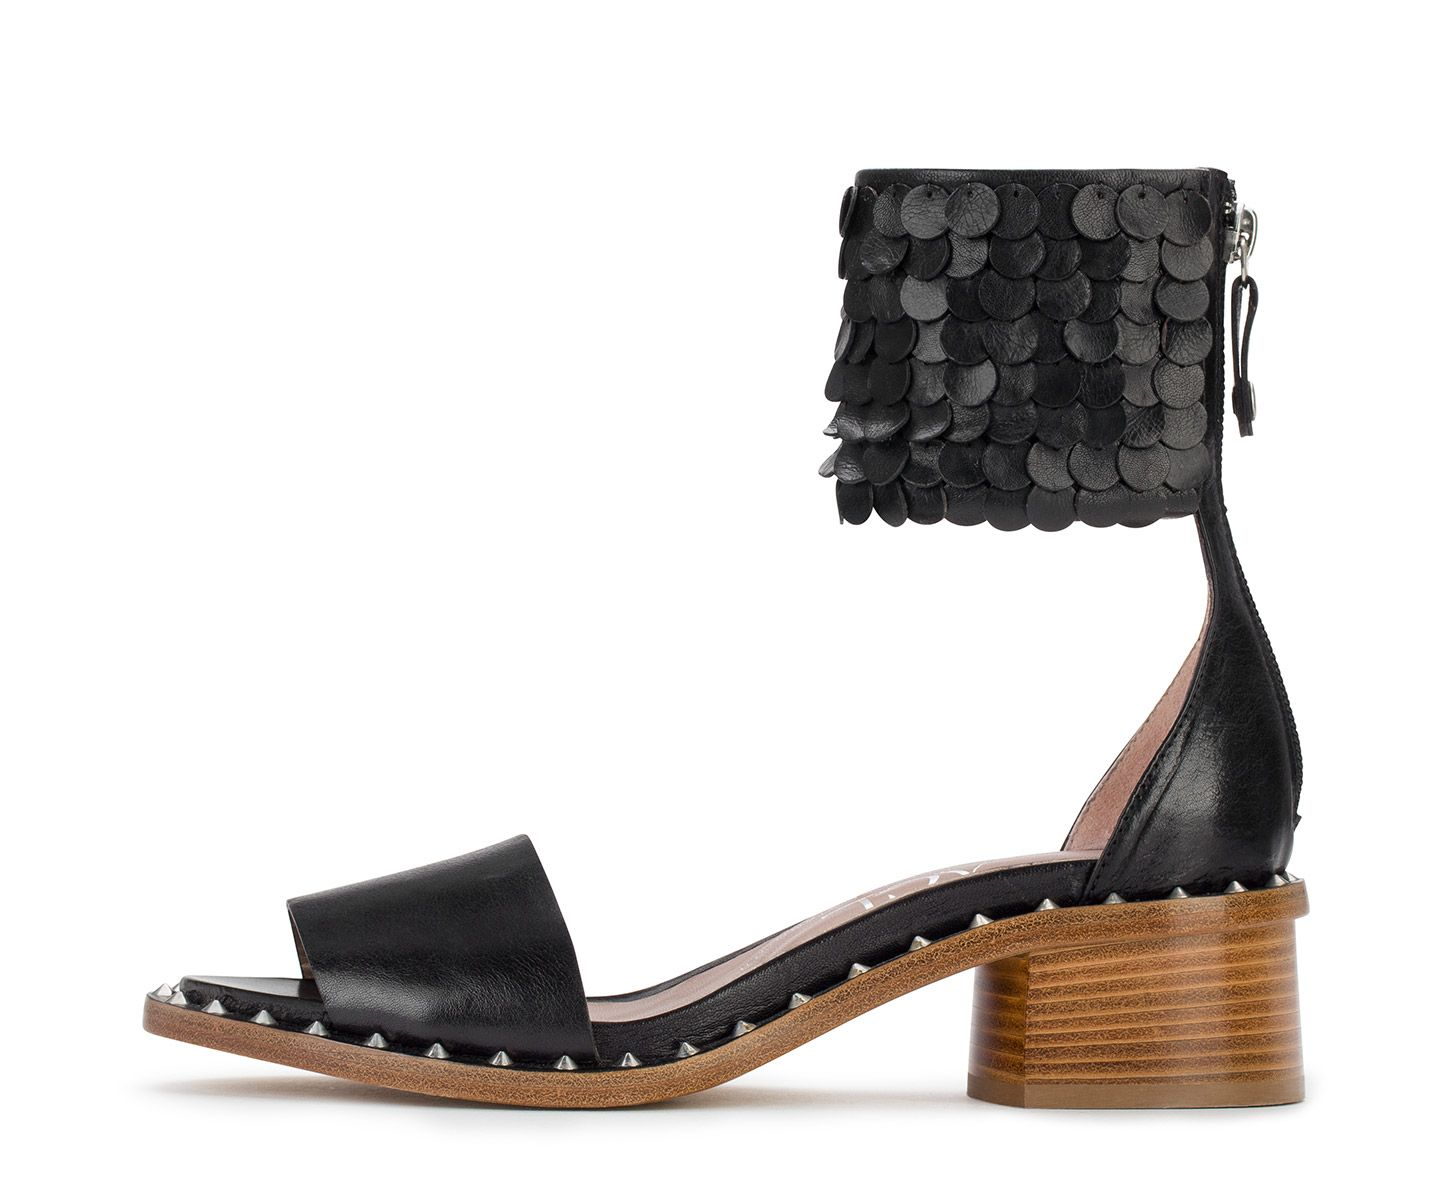 Sandal with leather sequins. #aglshoes #shoes #sandal #leather #black #studs #rock #feminine